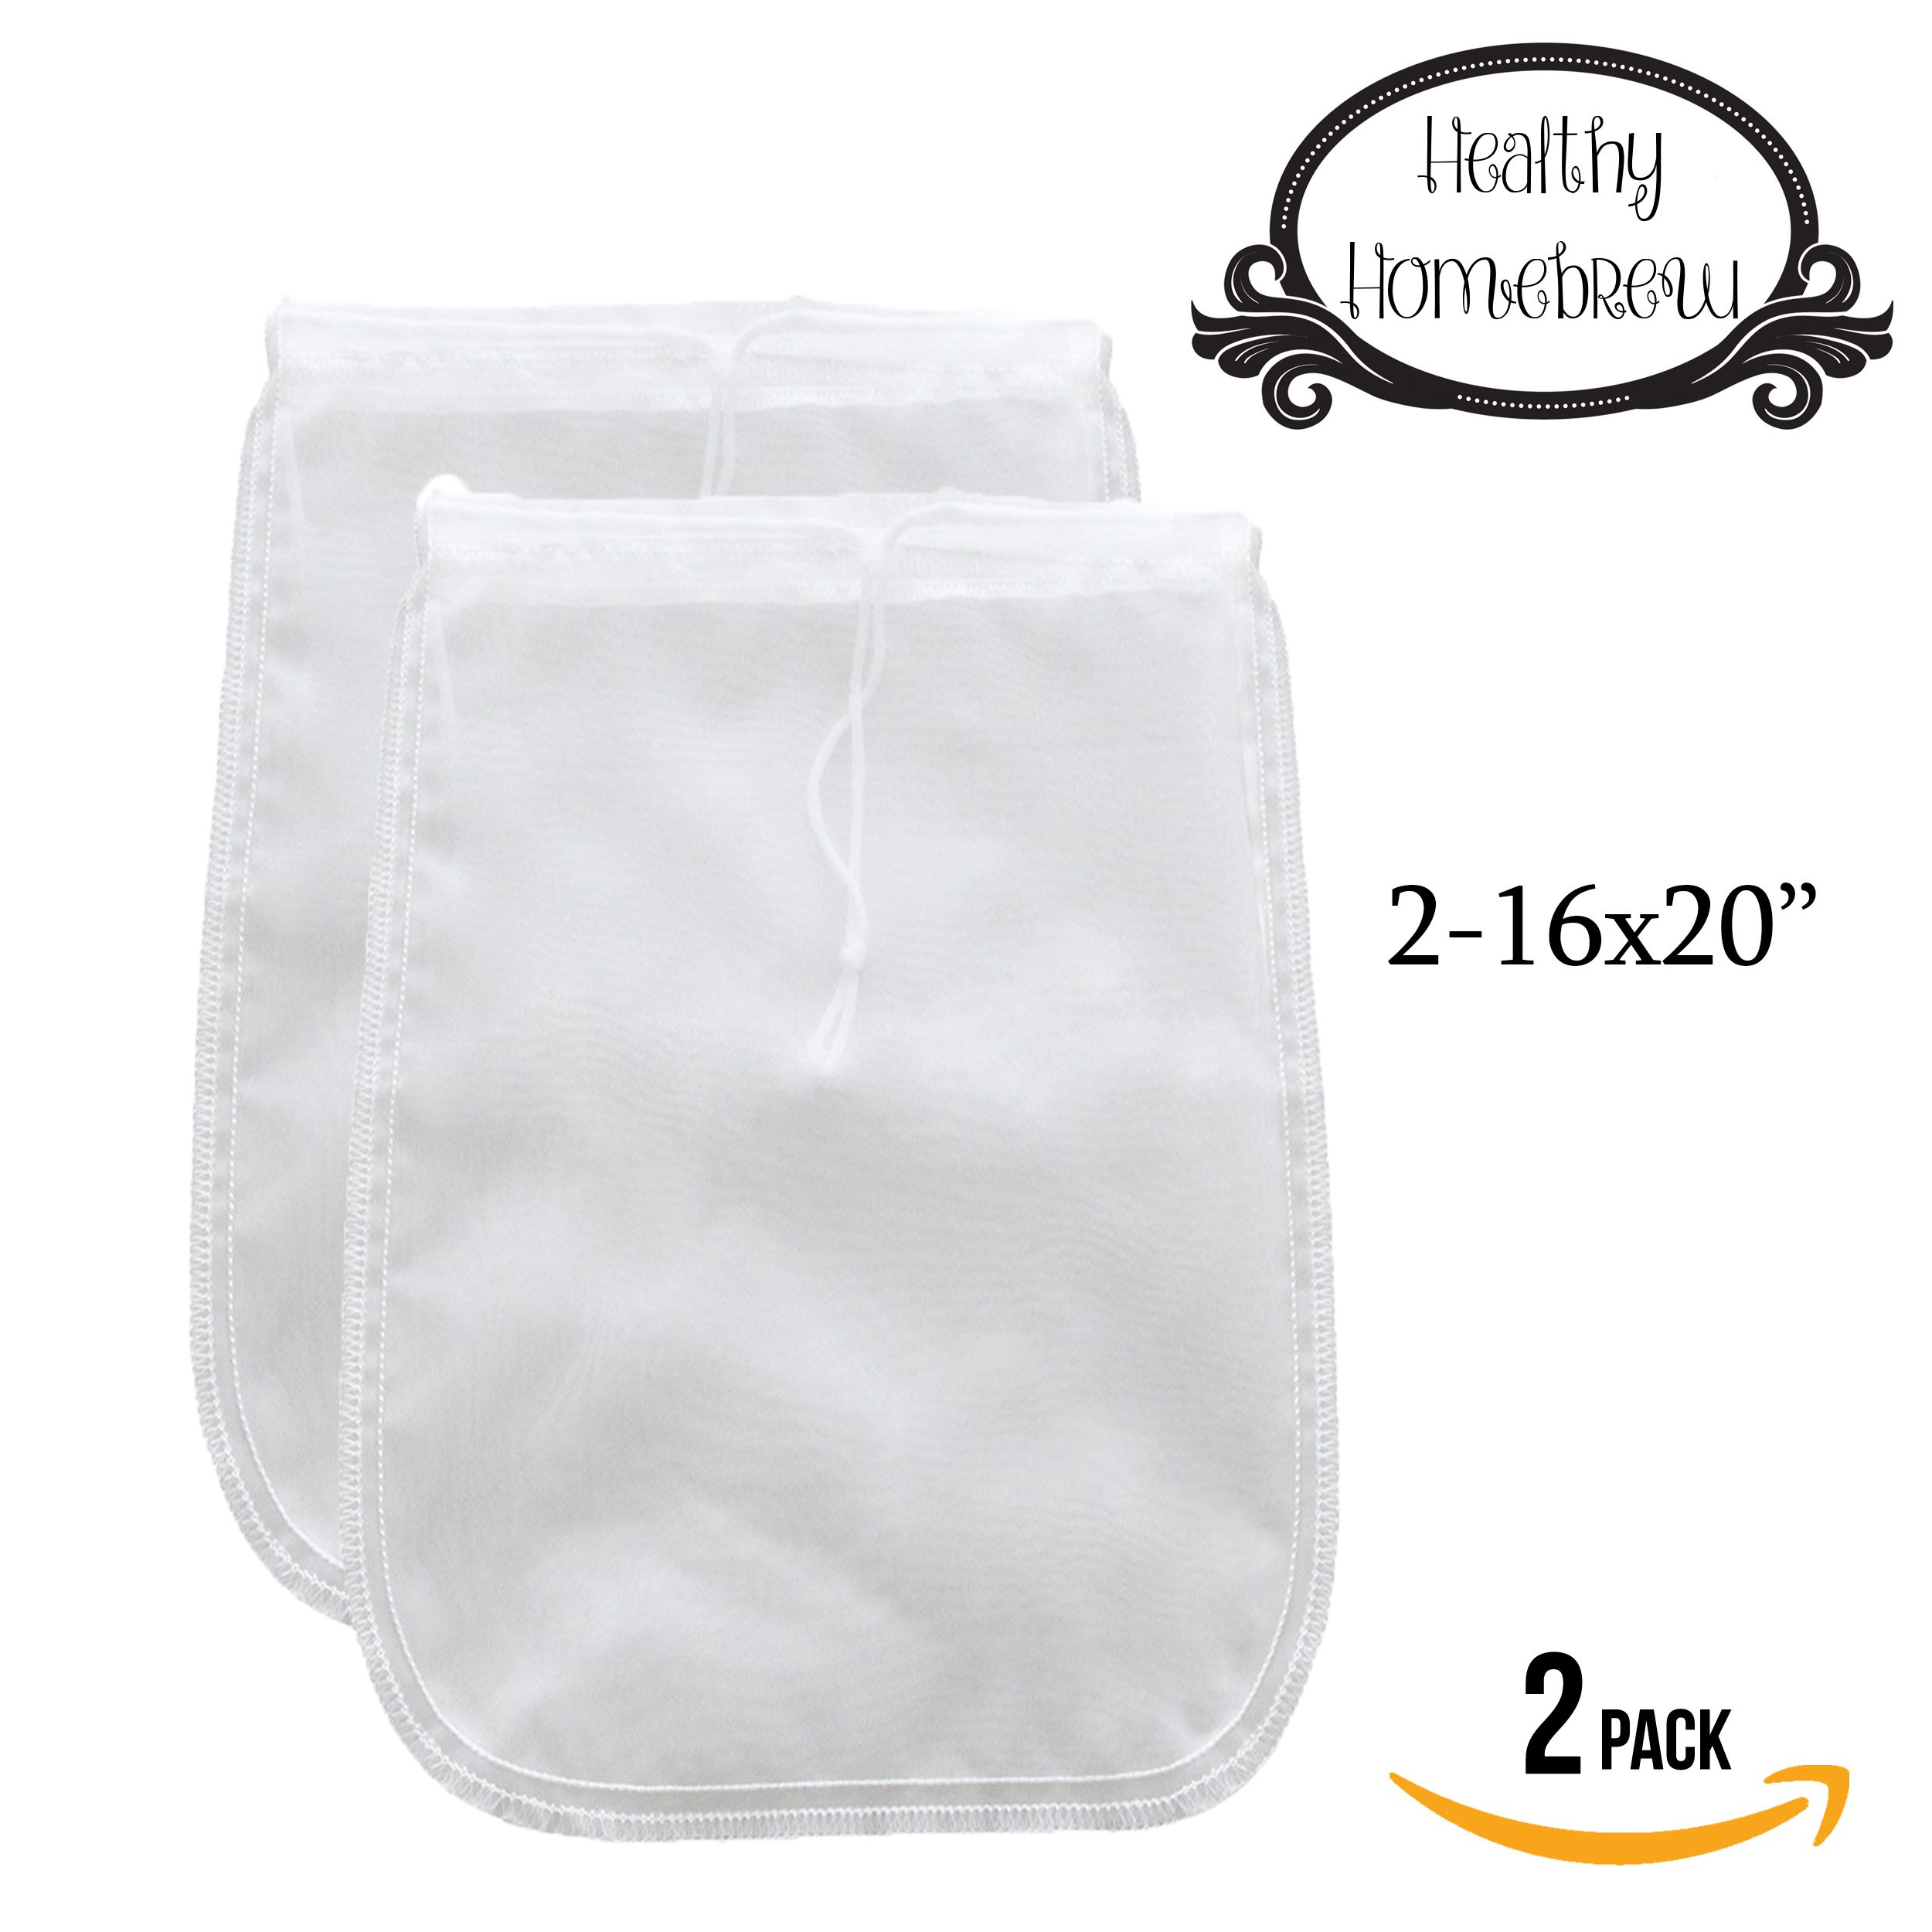 Mesh Strainer Bags for Almond, Cashew Nut Milks, Cold Brew Coffee, Homemade Greek Yogurt, Juicing, Home brewing – Reusable Extra Fine Nylon Extraction Sack (2 Pack - 16x20'' - XL)